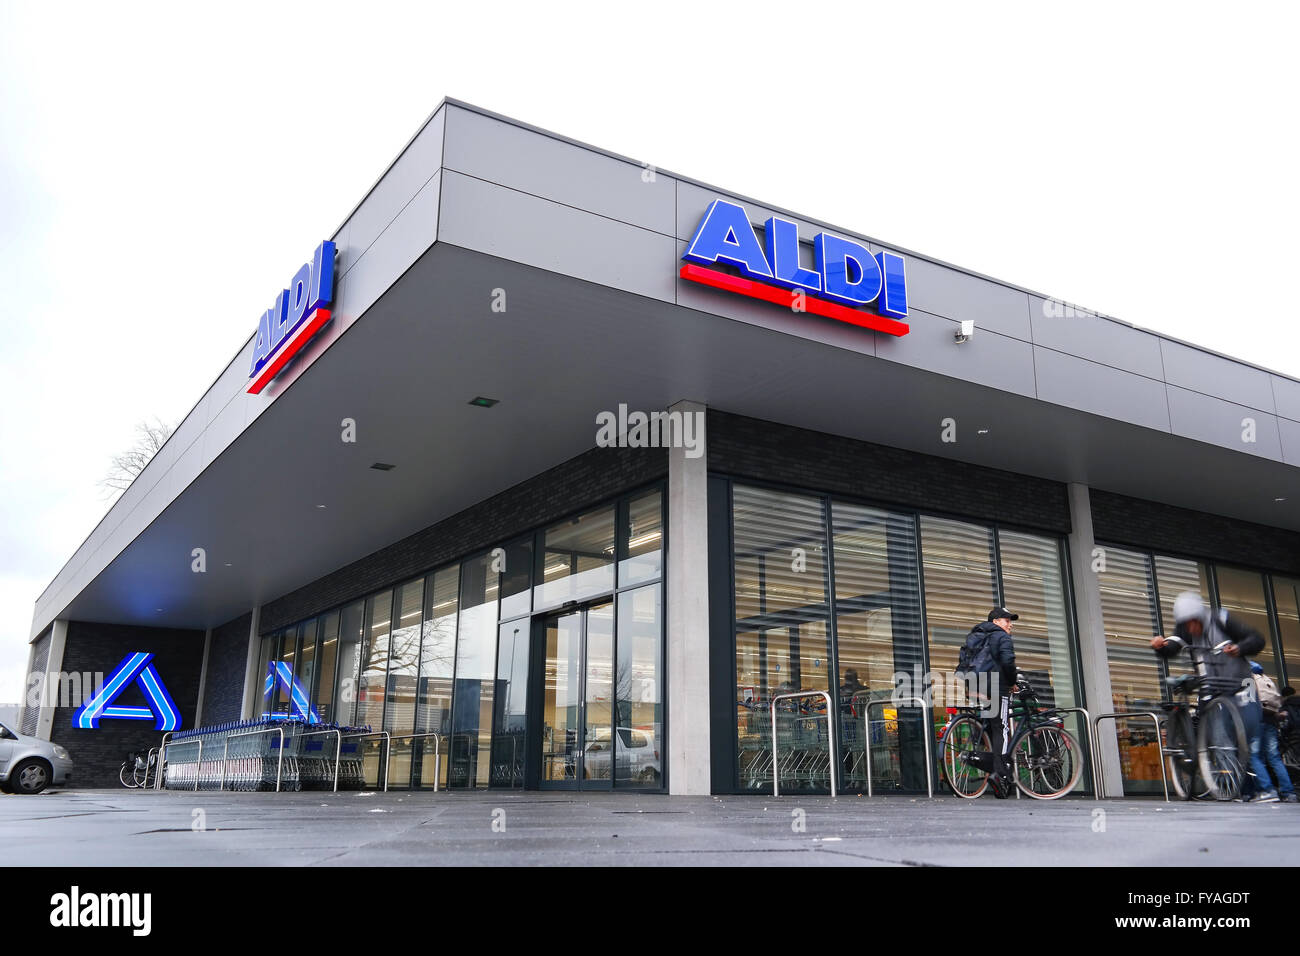 A new restyled ALDI discount Supermarket, in the new house style of Aldi Nord. - Stock Image